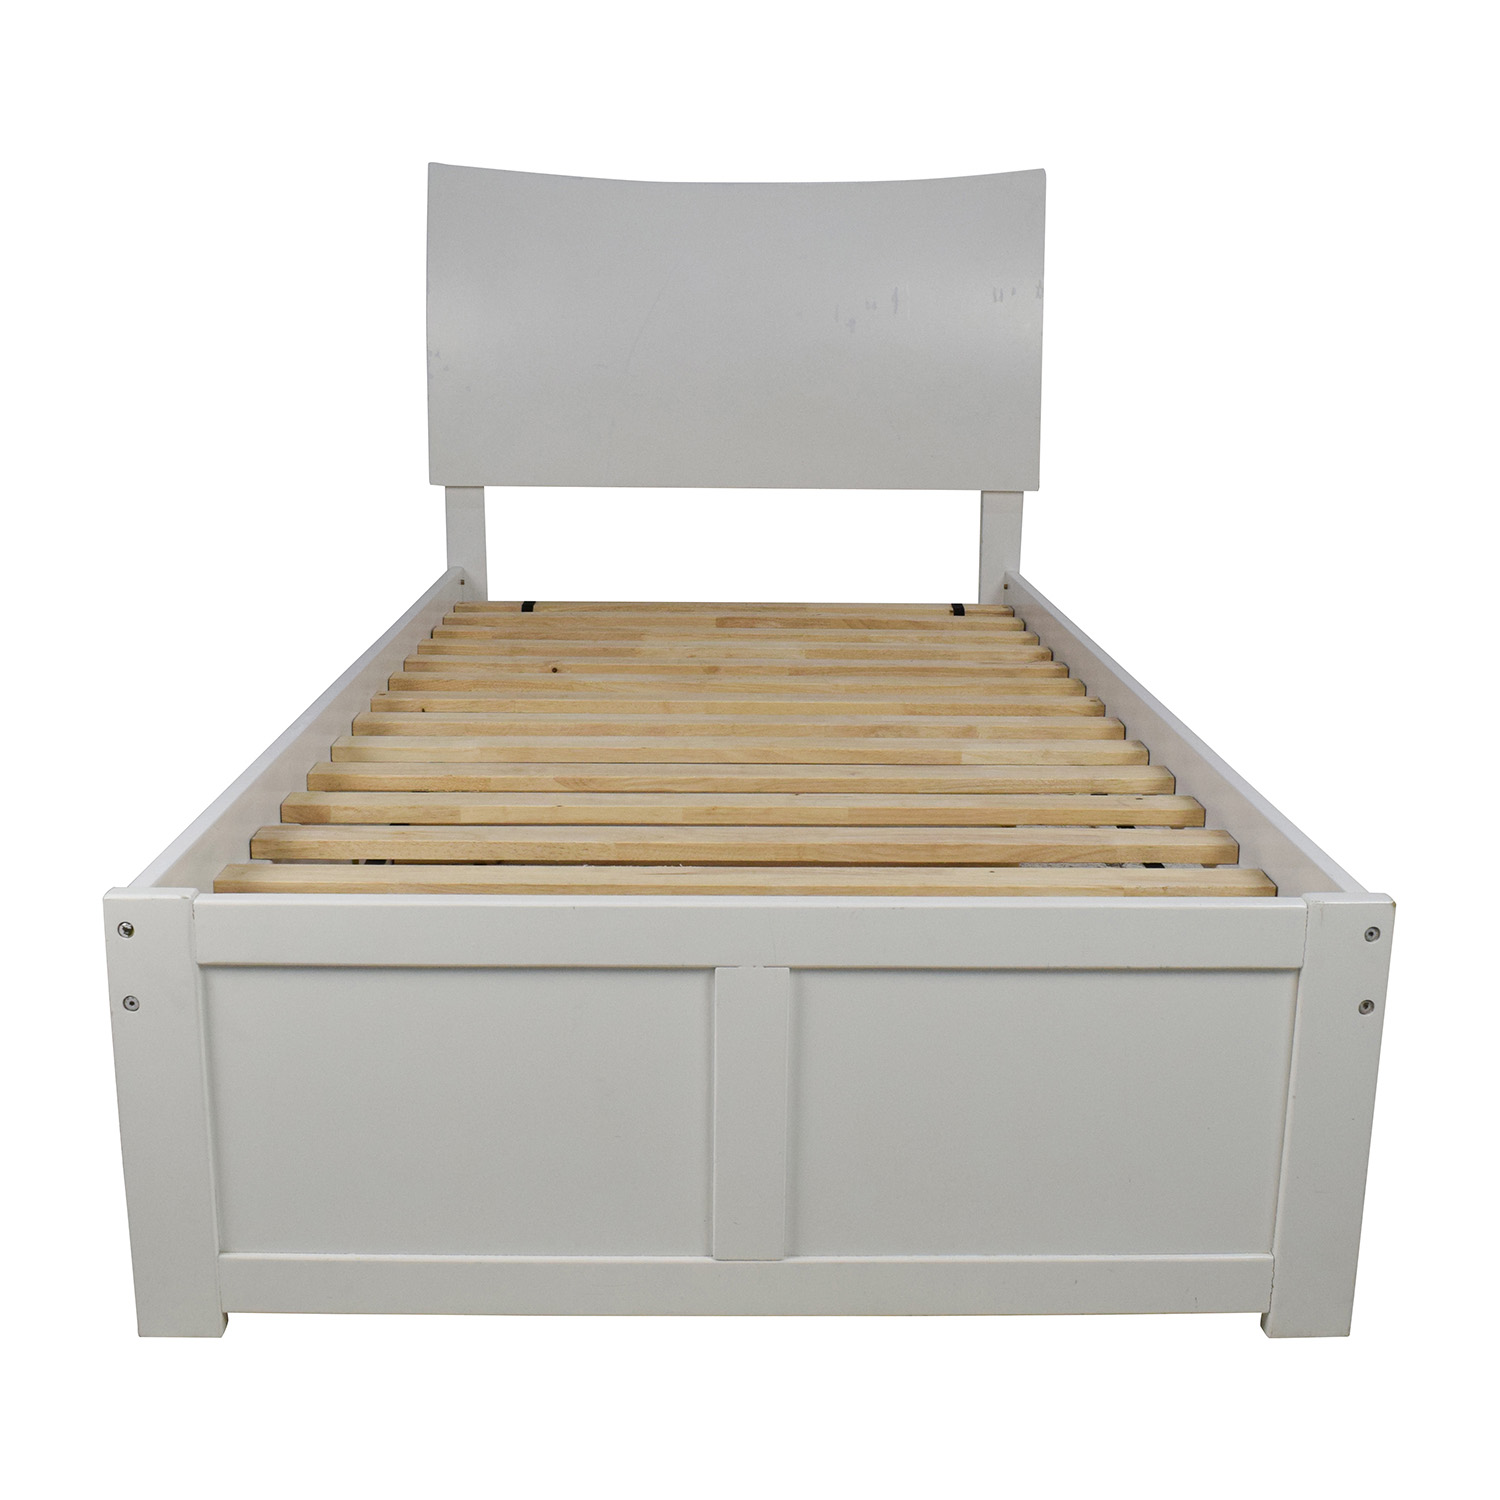 bed trundle wooden in lacquer second roll ol oak trundlebed taurus beds out